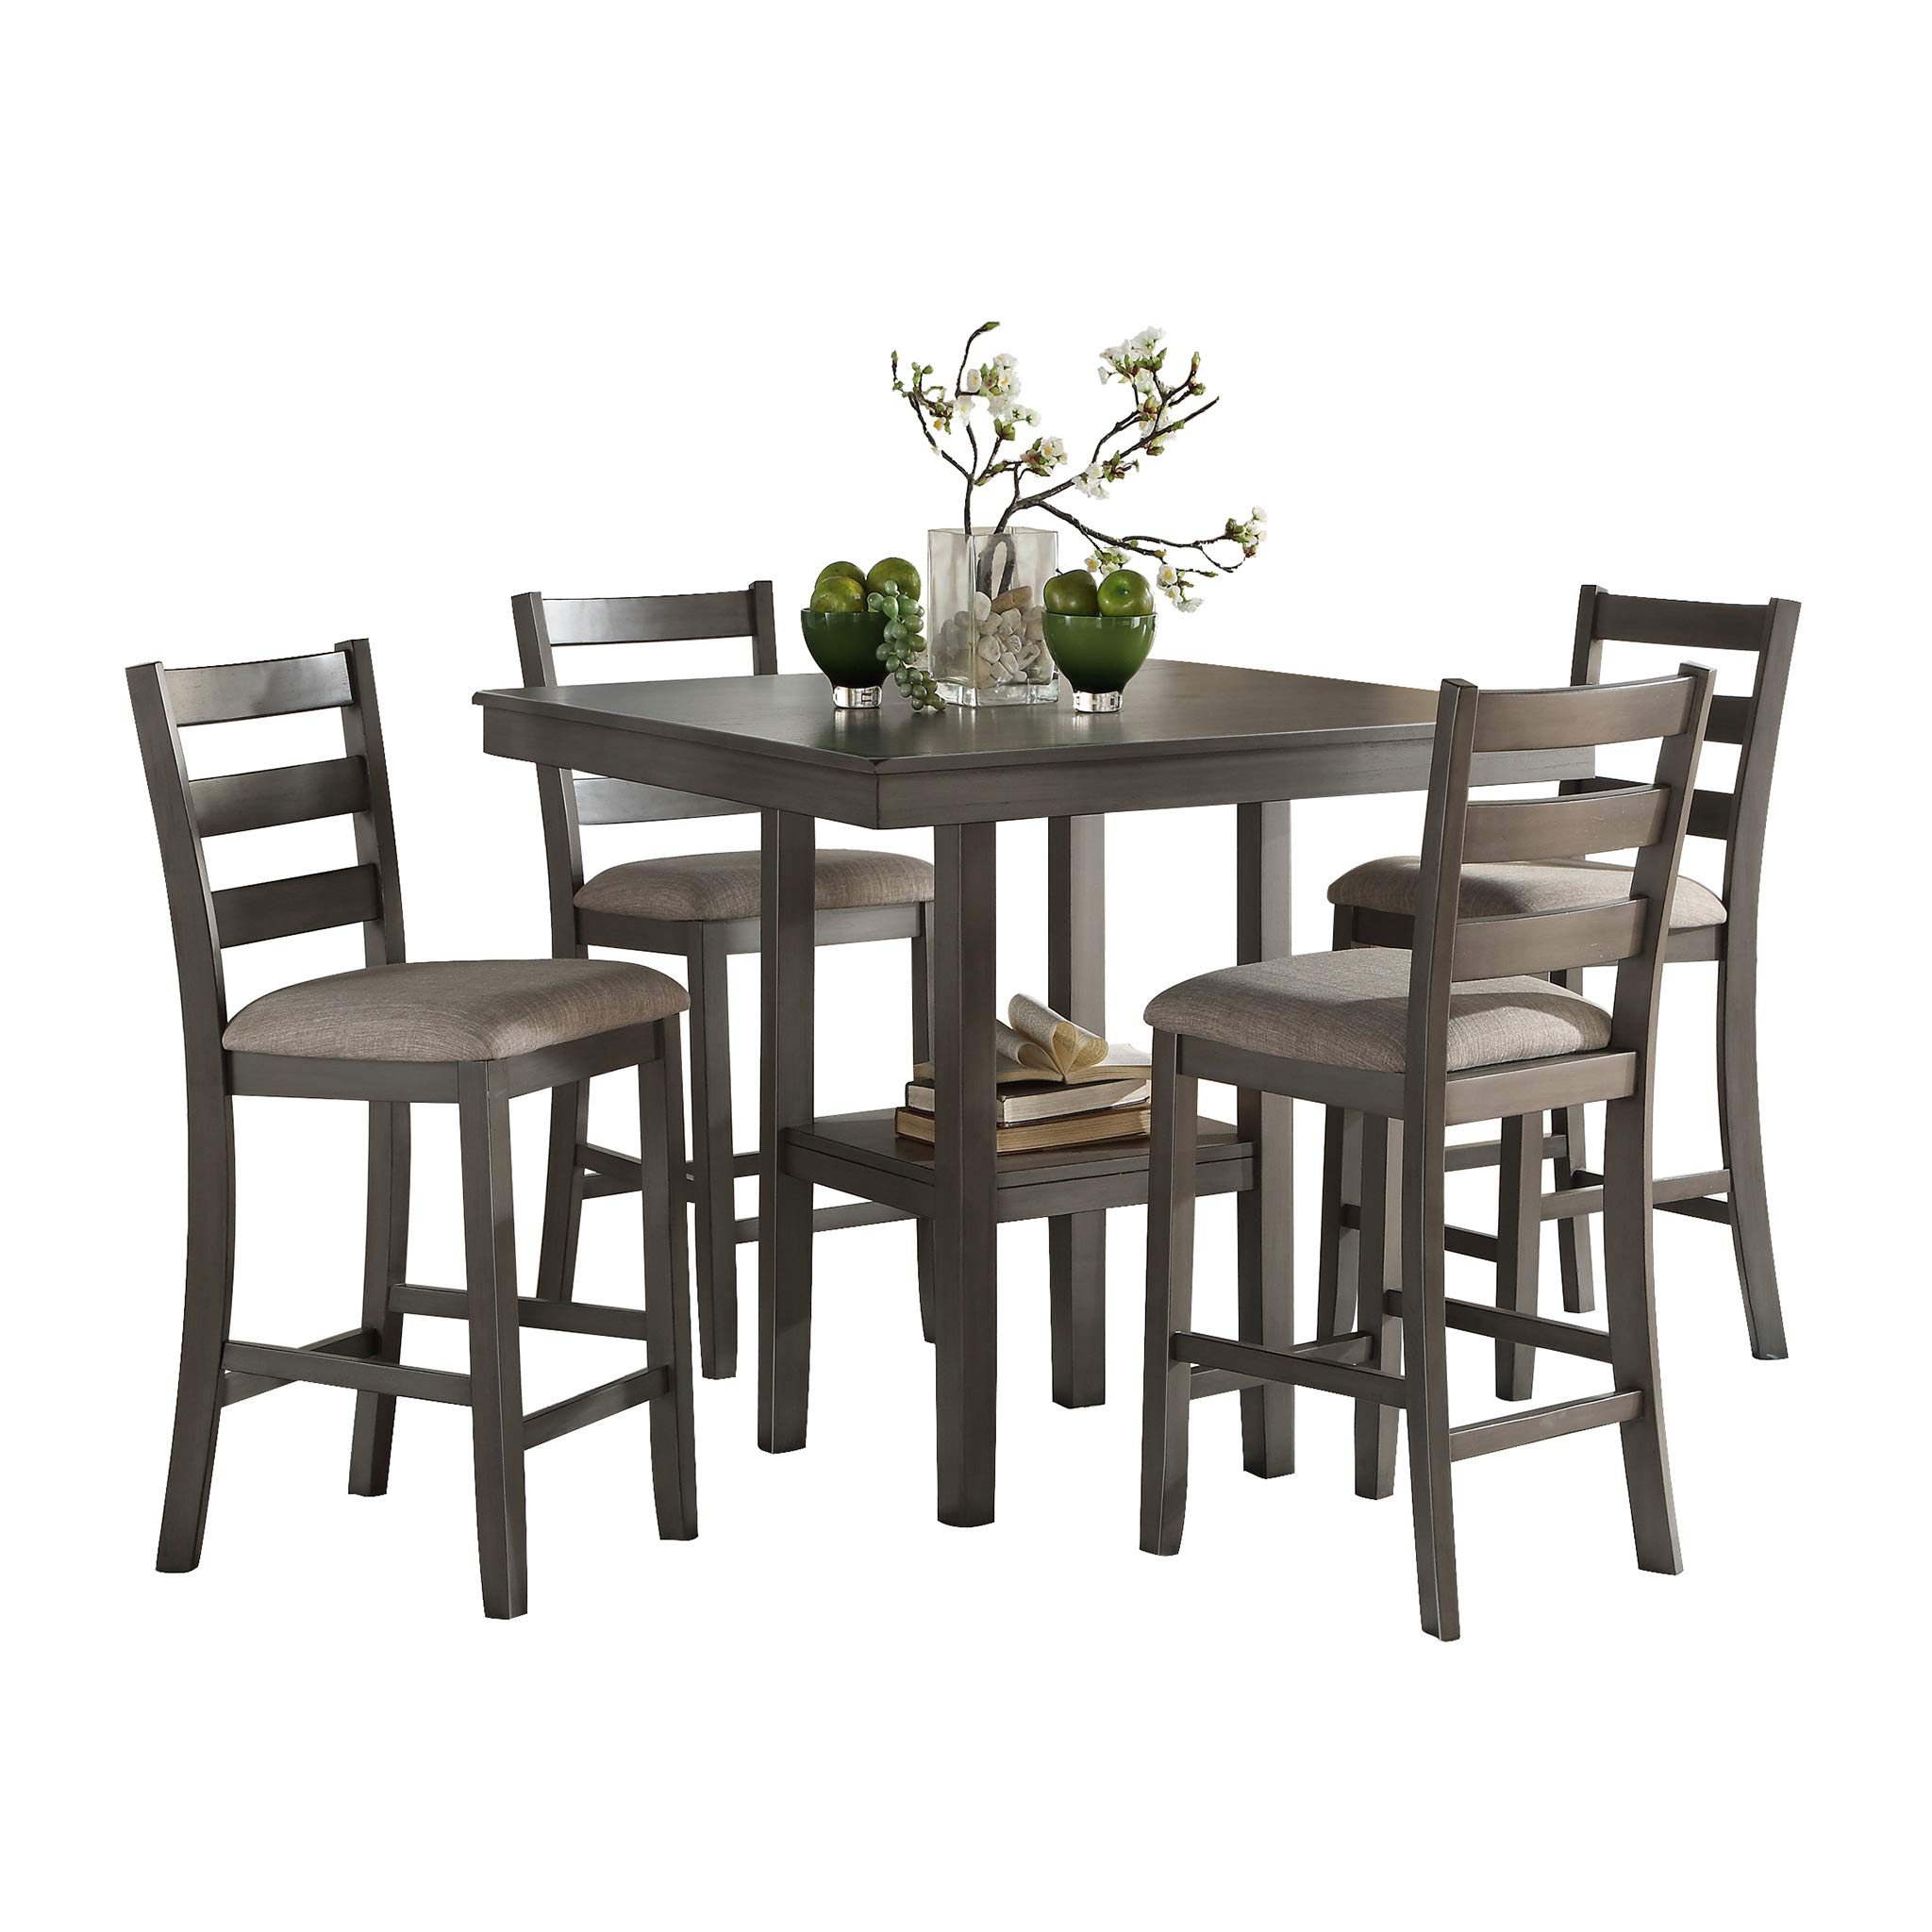 Homelegance Sharon 5-Piece Pack Counter Height Dinette Set, Gray